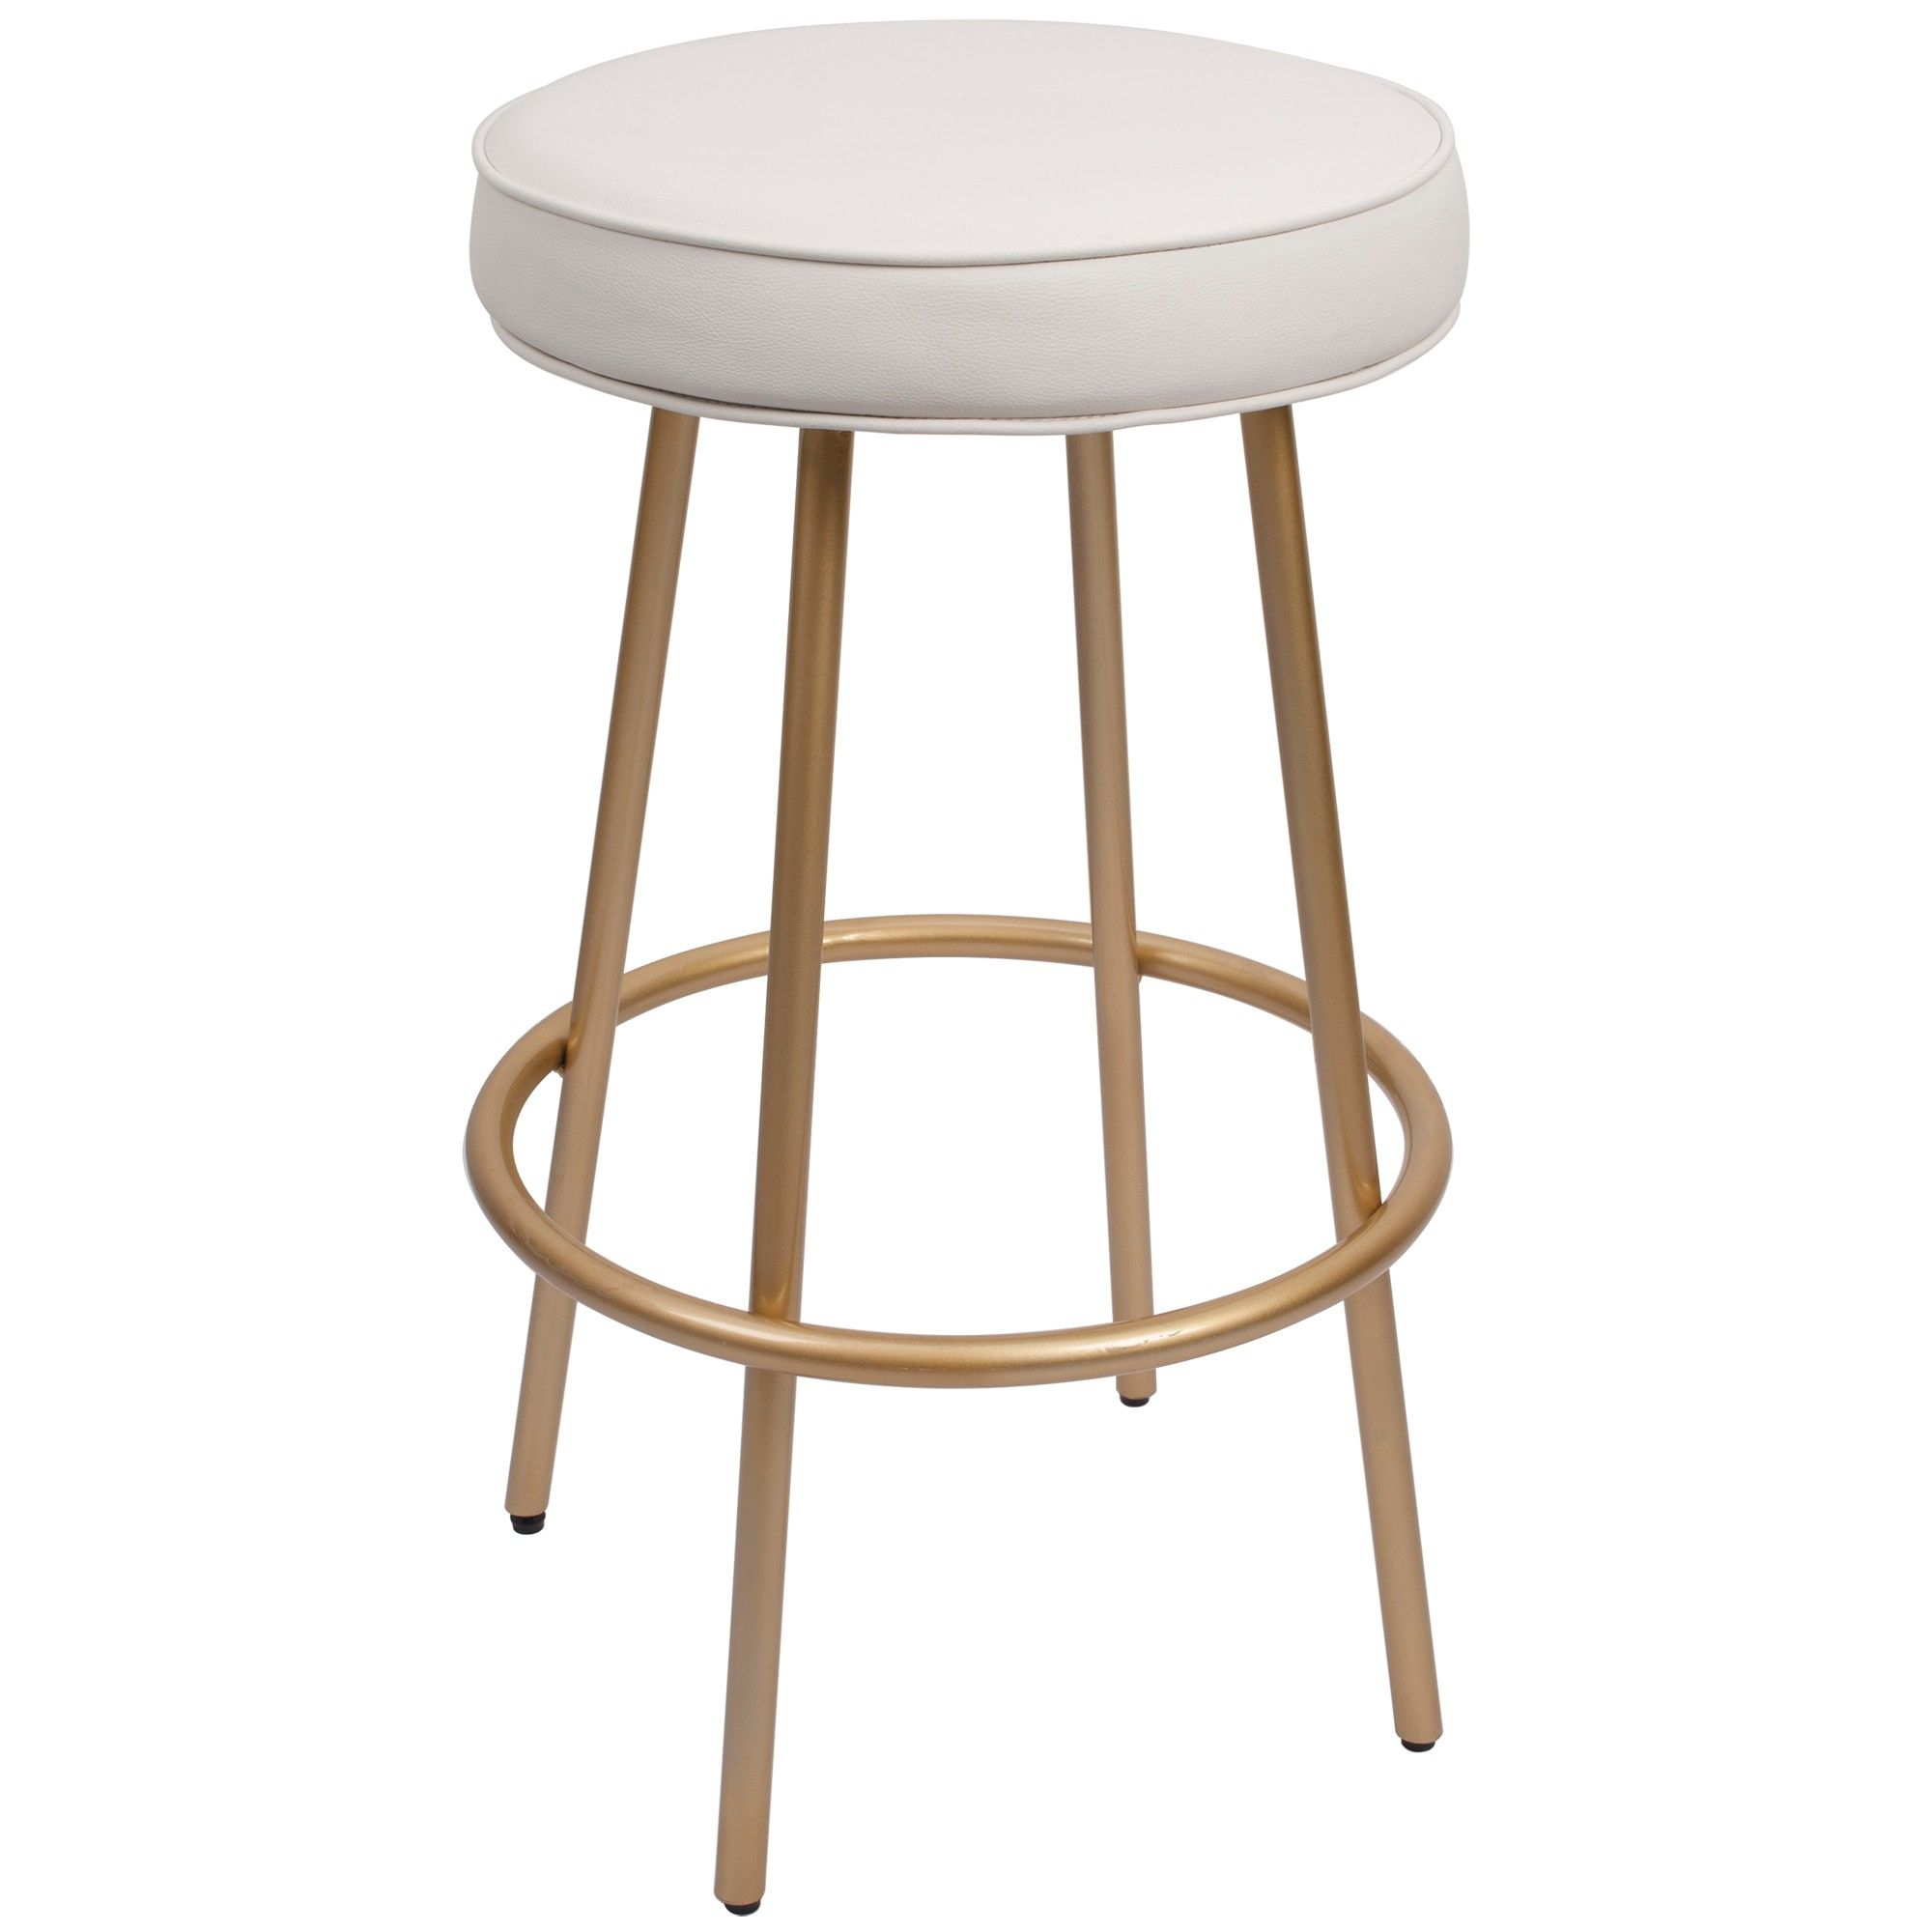 29 Carly Modern Backless Barstool With Round Upholstered Seat In Gunmetal Silverwood Backless Bar Stools Upholstered Bar Stools Bar Stools